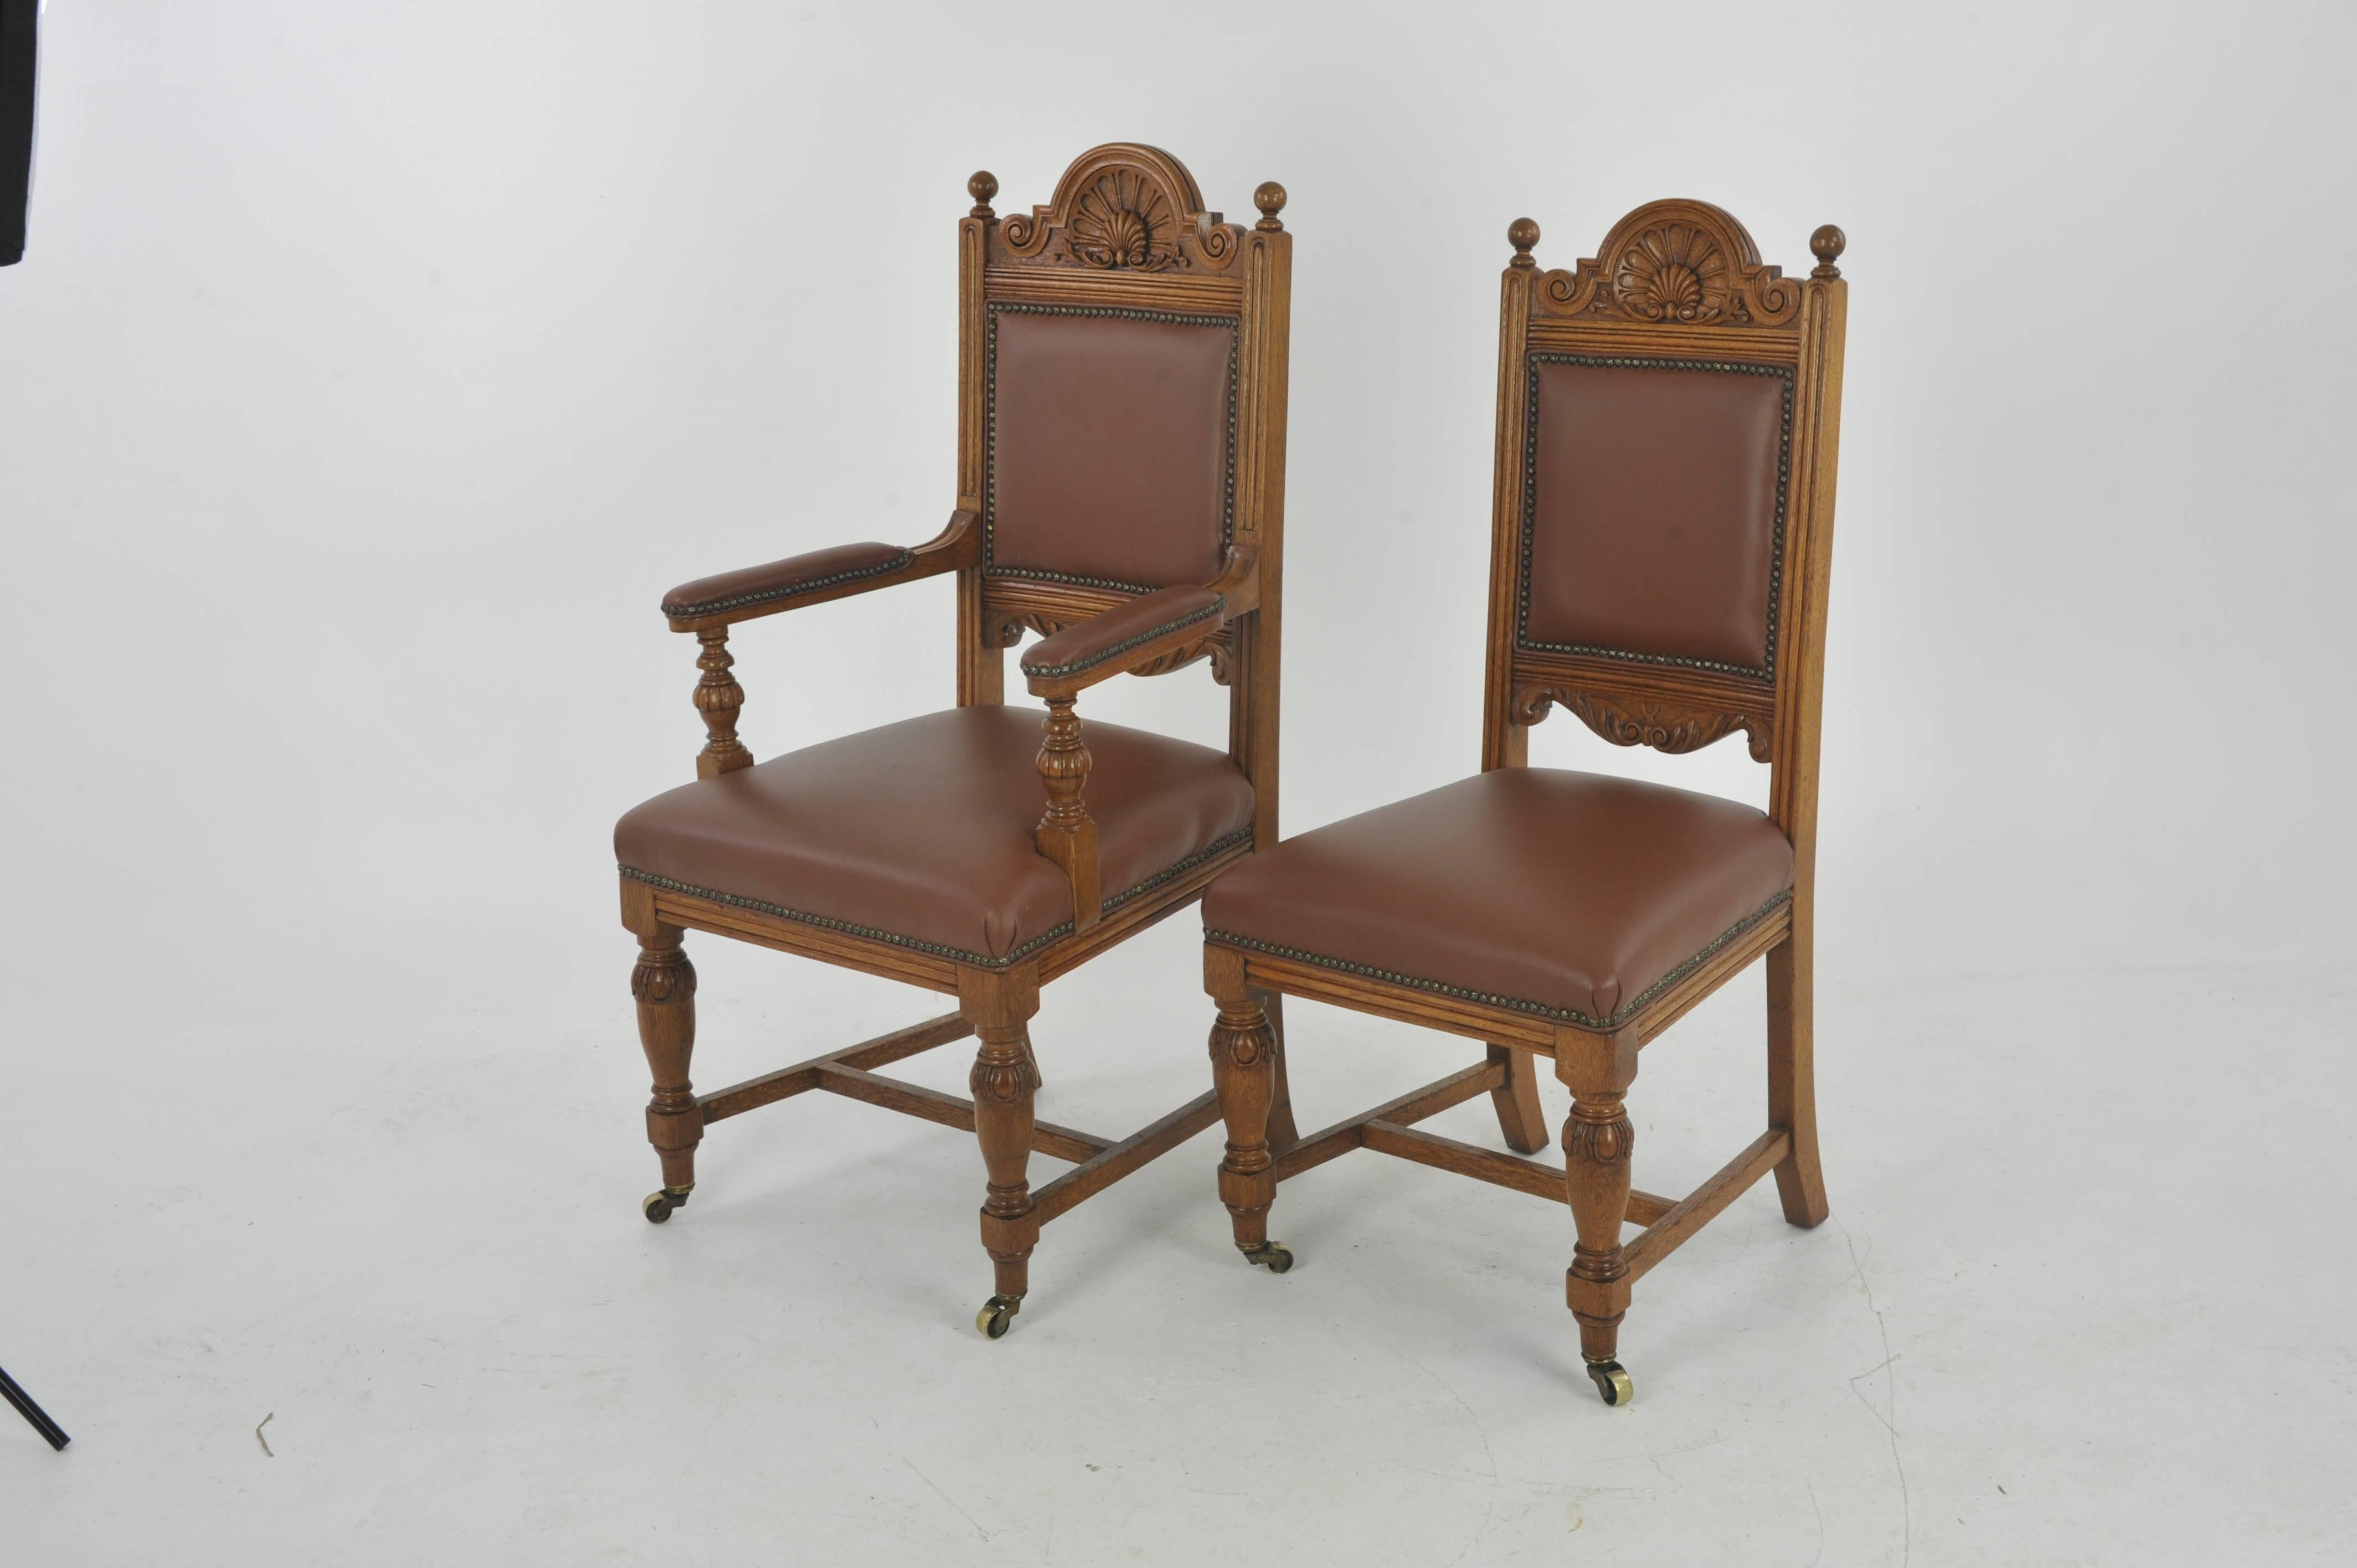 antique oak dining chairs how to make chair covers for christmas carved six scotland 1880 at 1stdibs 5 1